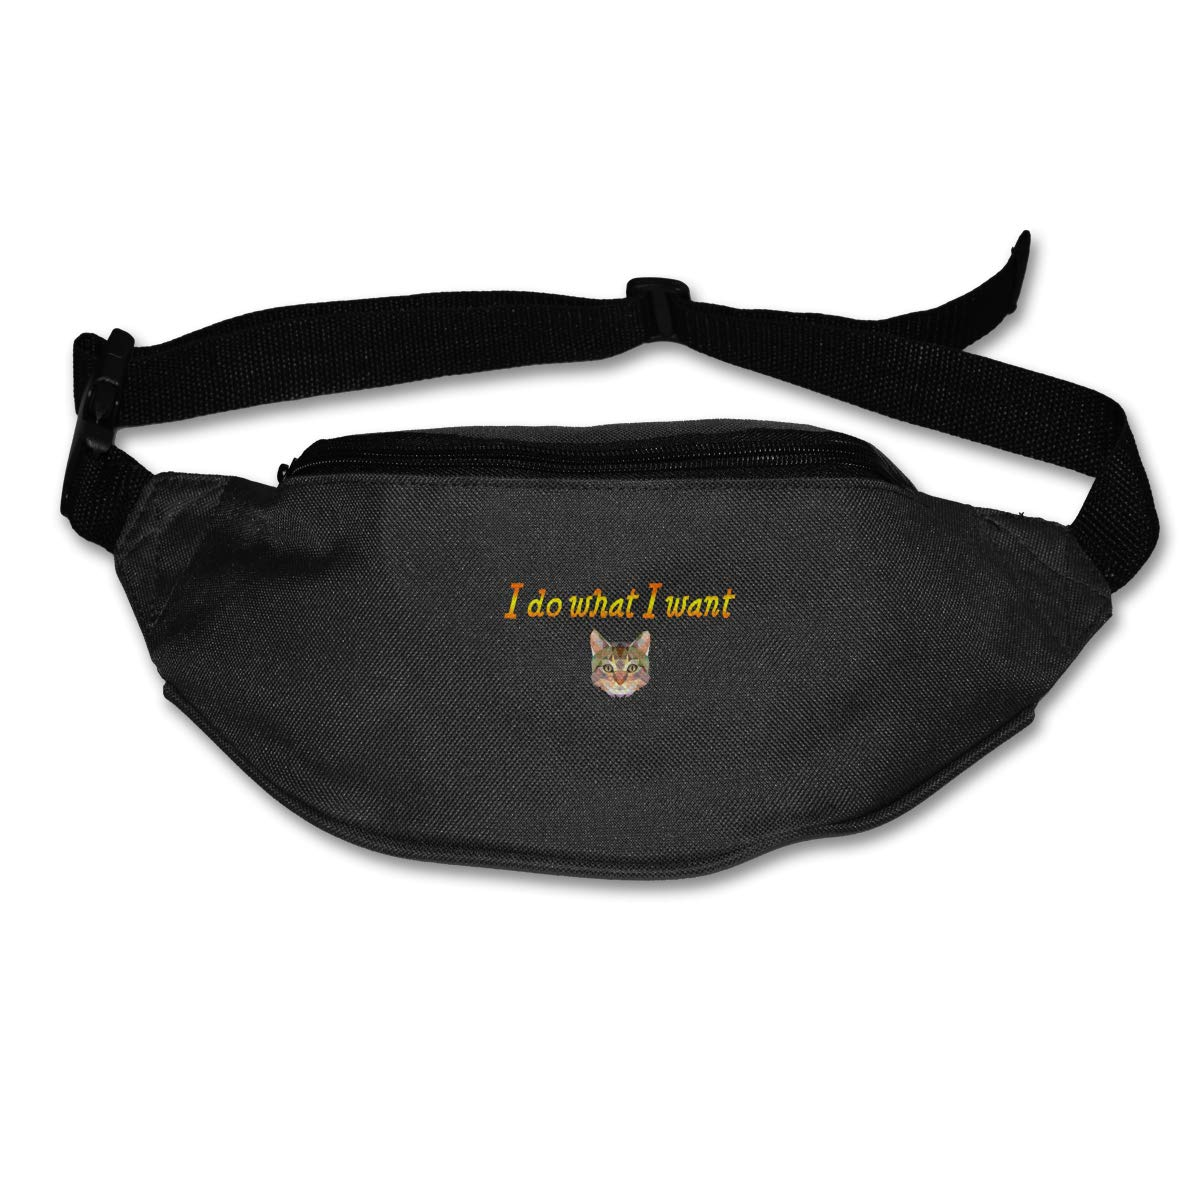 I Do What I Want Cat 7 Sport Waist Packs Fanny Pack Adjustable For Hike